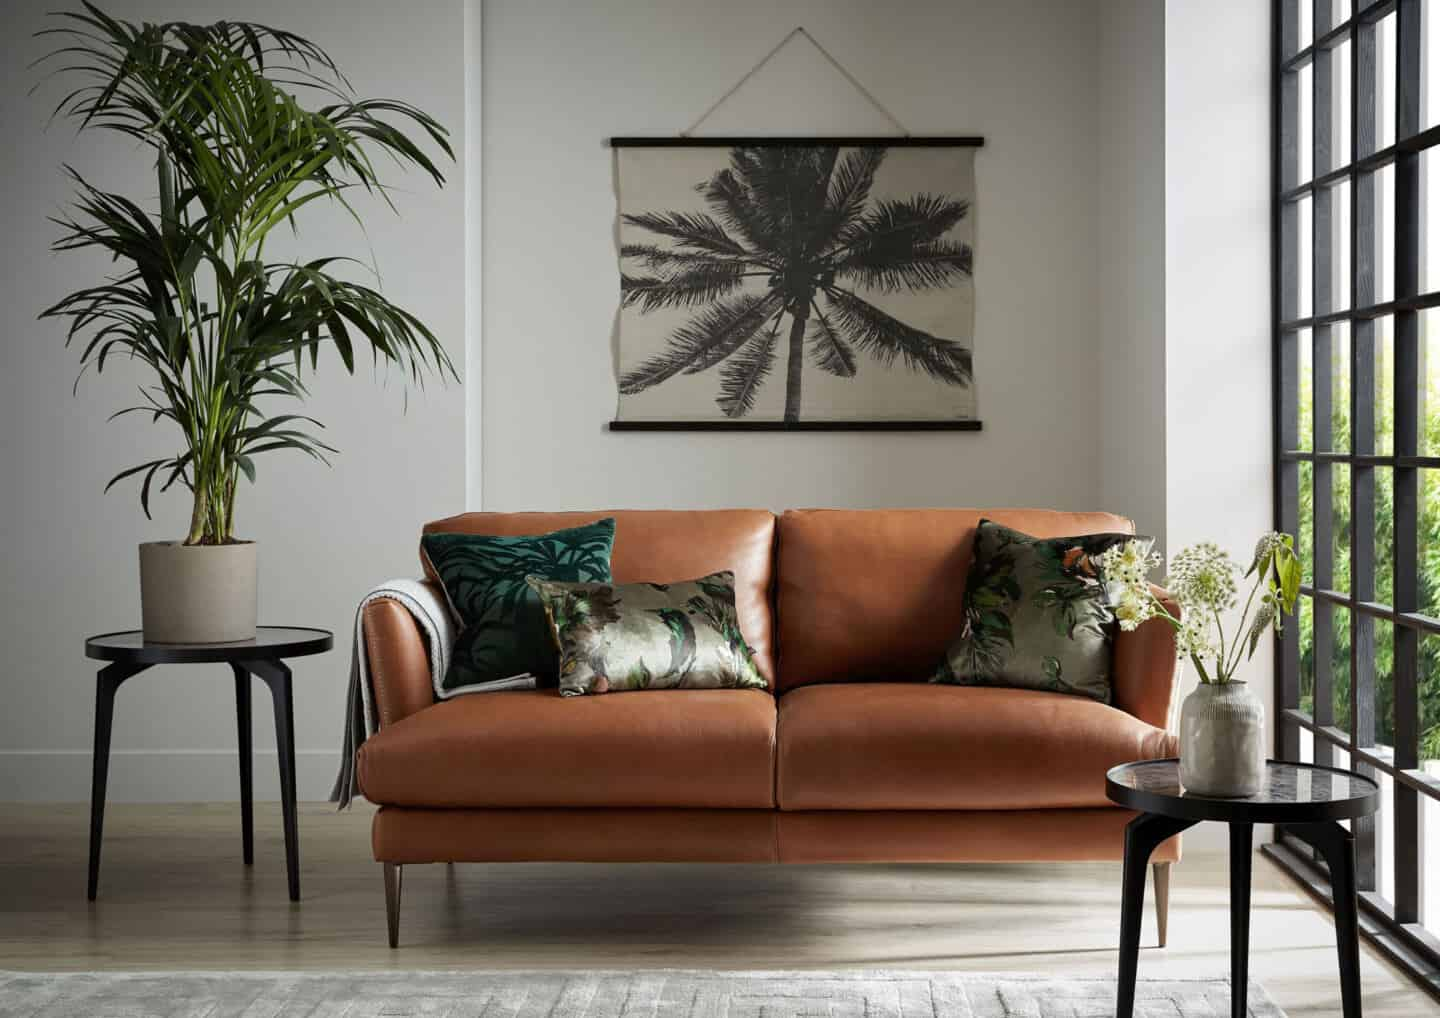 Bringing Natural Elements into the Home. Living room and  featuring a brown leather sofa with botanical cushions. A botanical wall hanging is on the wall behind and views through the window.